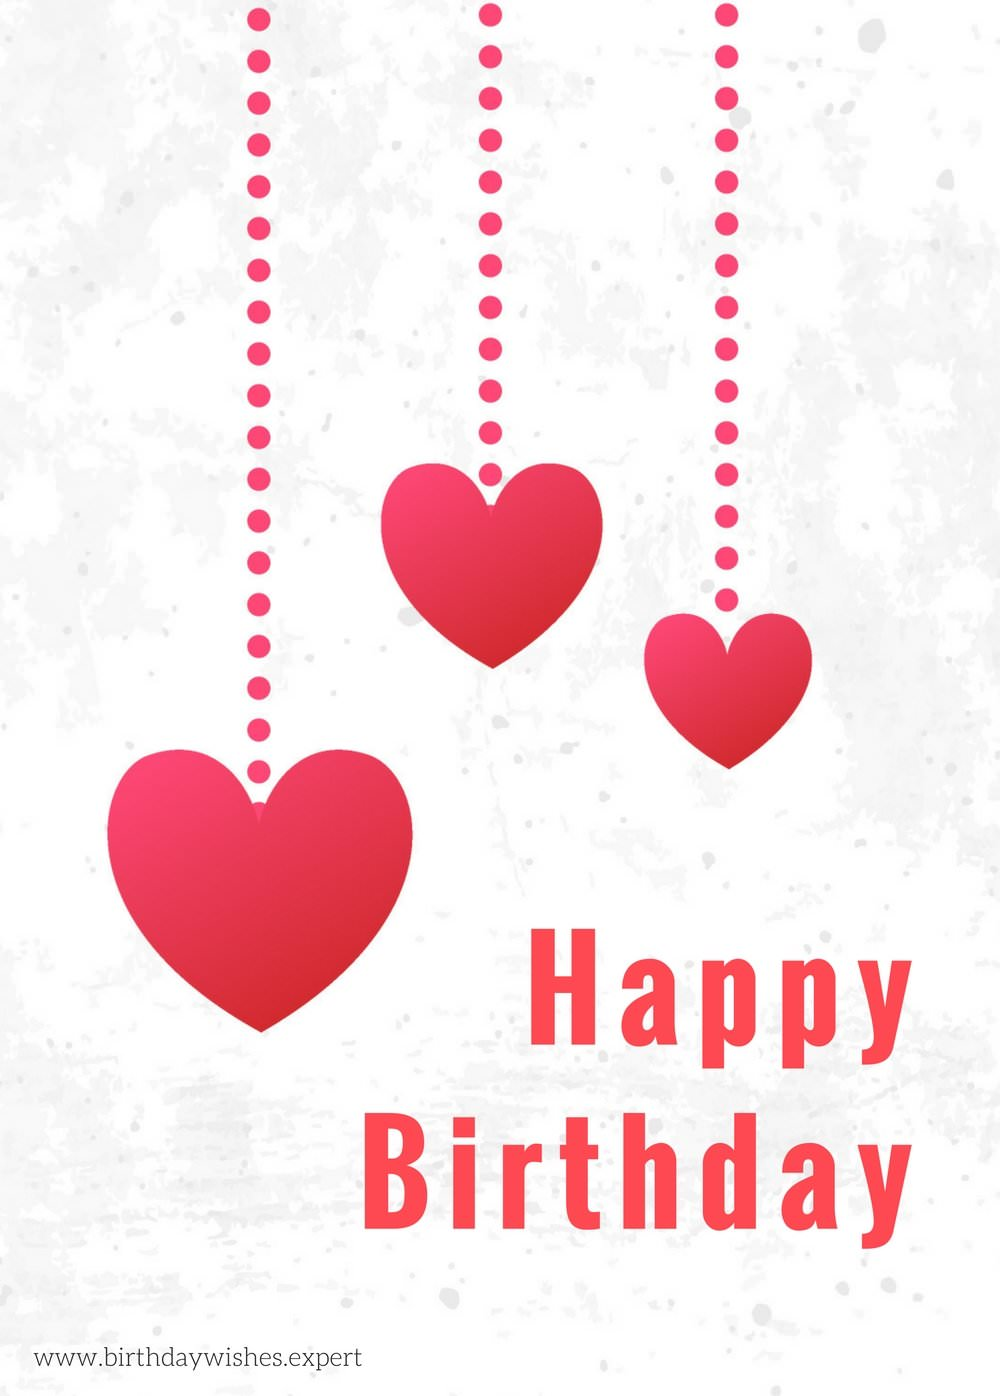 Happy Birthday Wish For My Wife On Image With Hearts On White Background